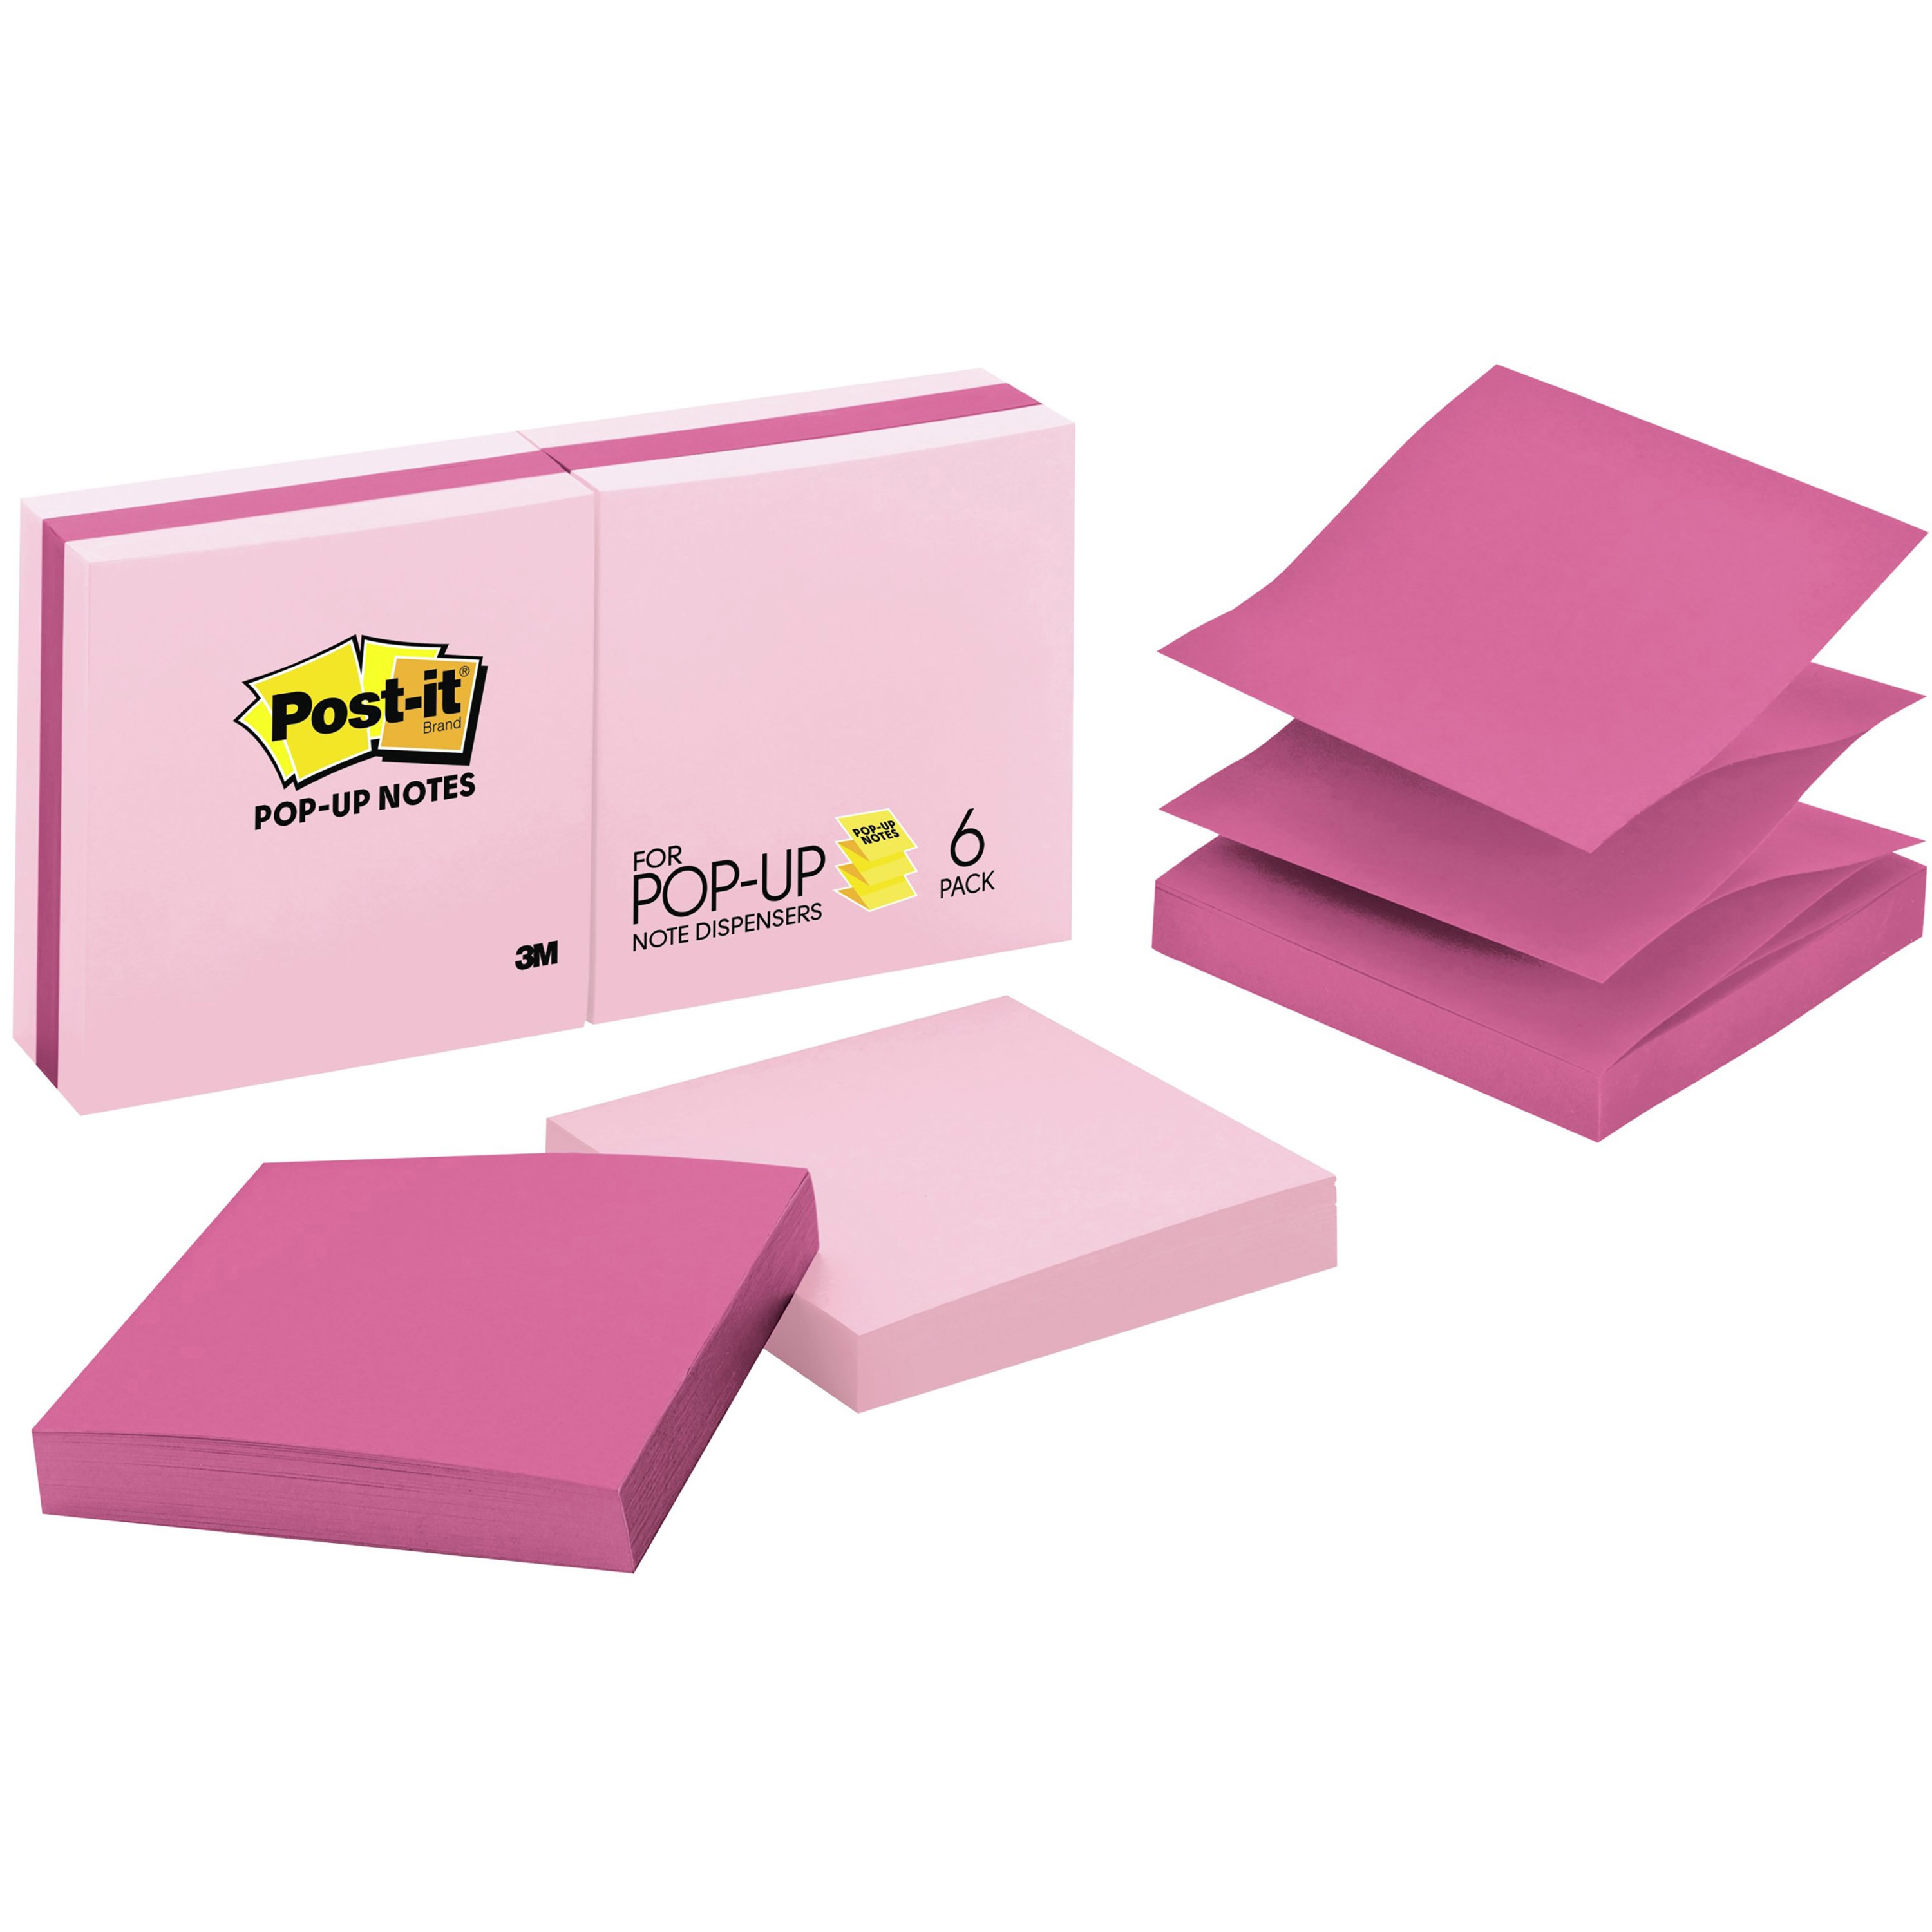 """Post-it Pop-up Notes, 3"""" x 3"""", Assorted Pink, Pink, 6 / Pack"""